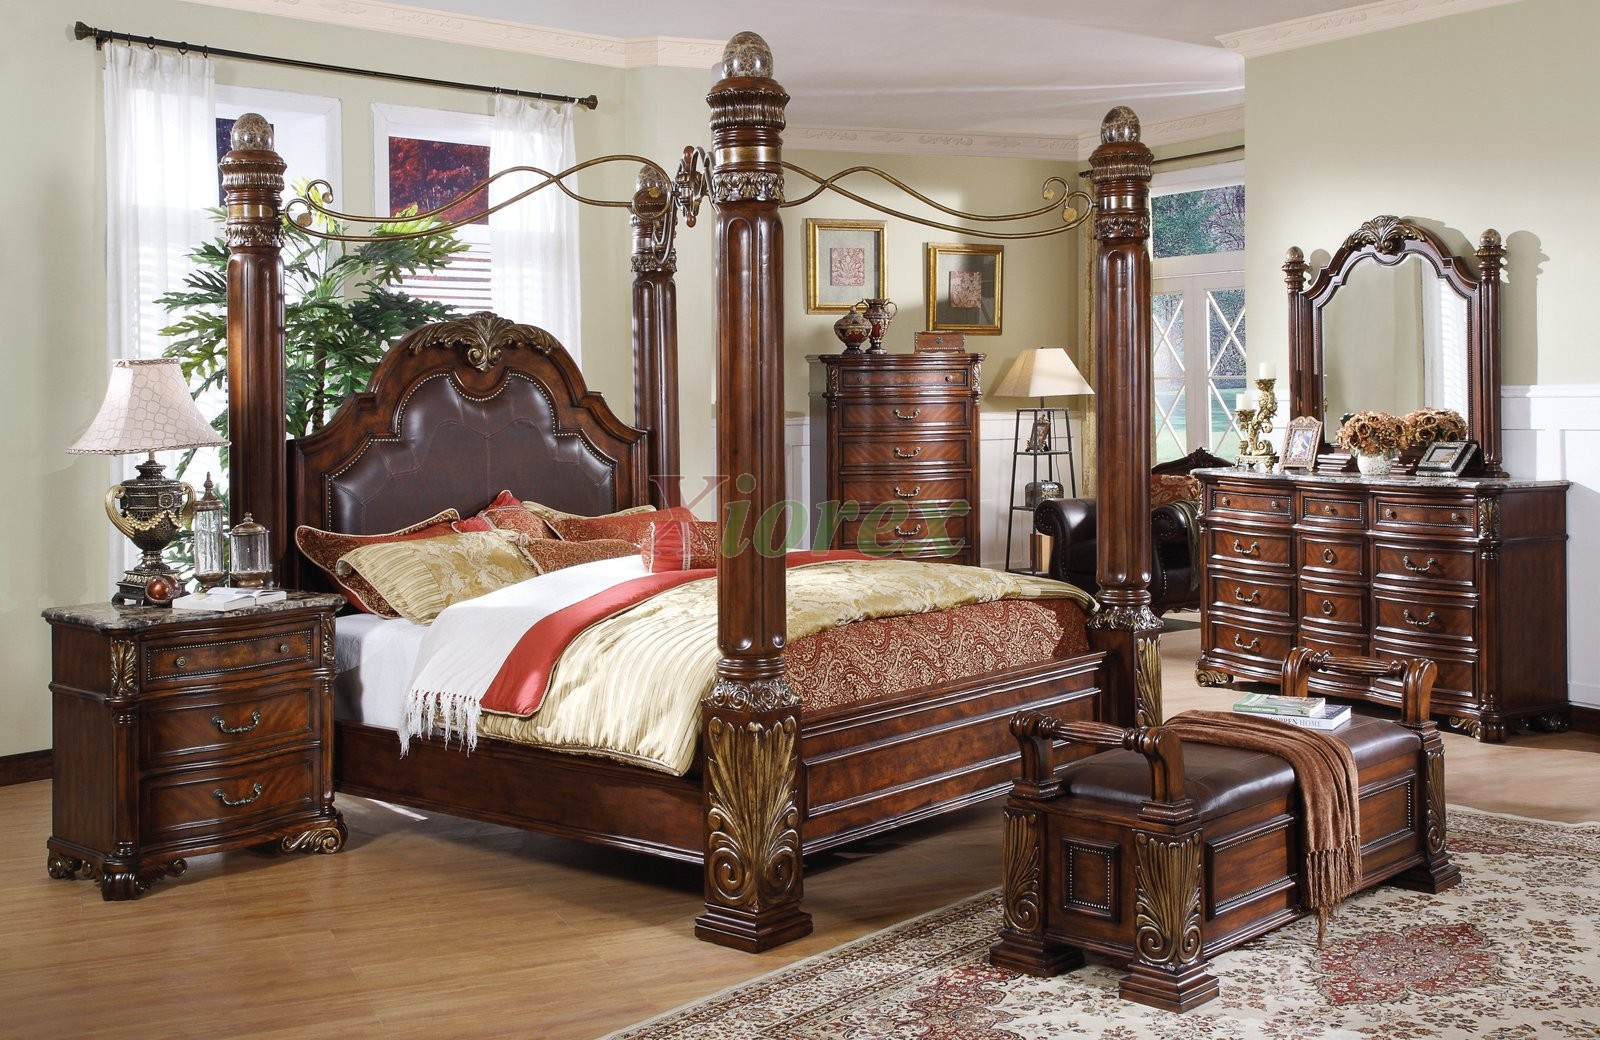 1 Queen Bed Frame Floor Poster Bed